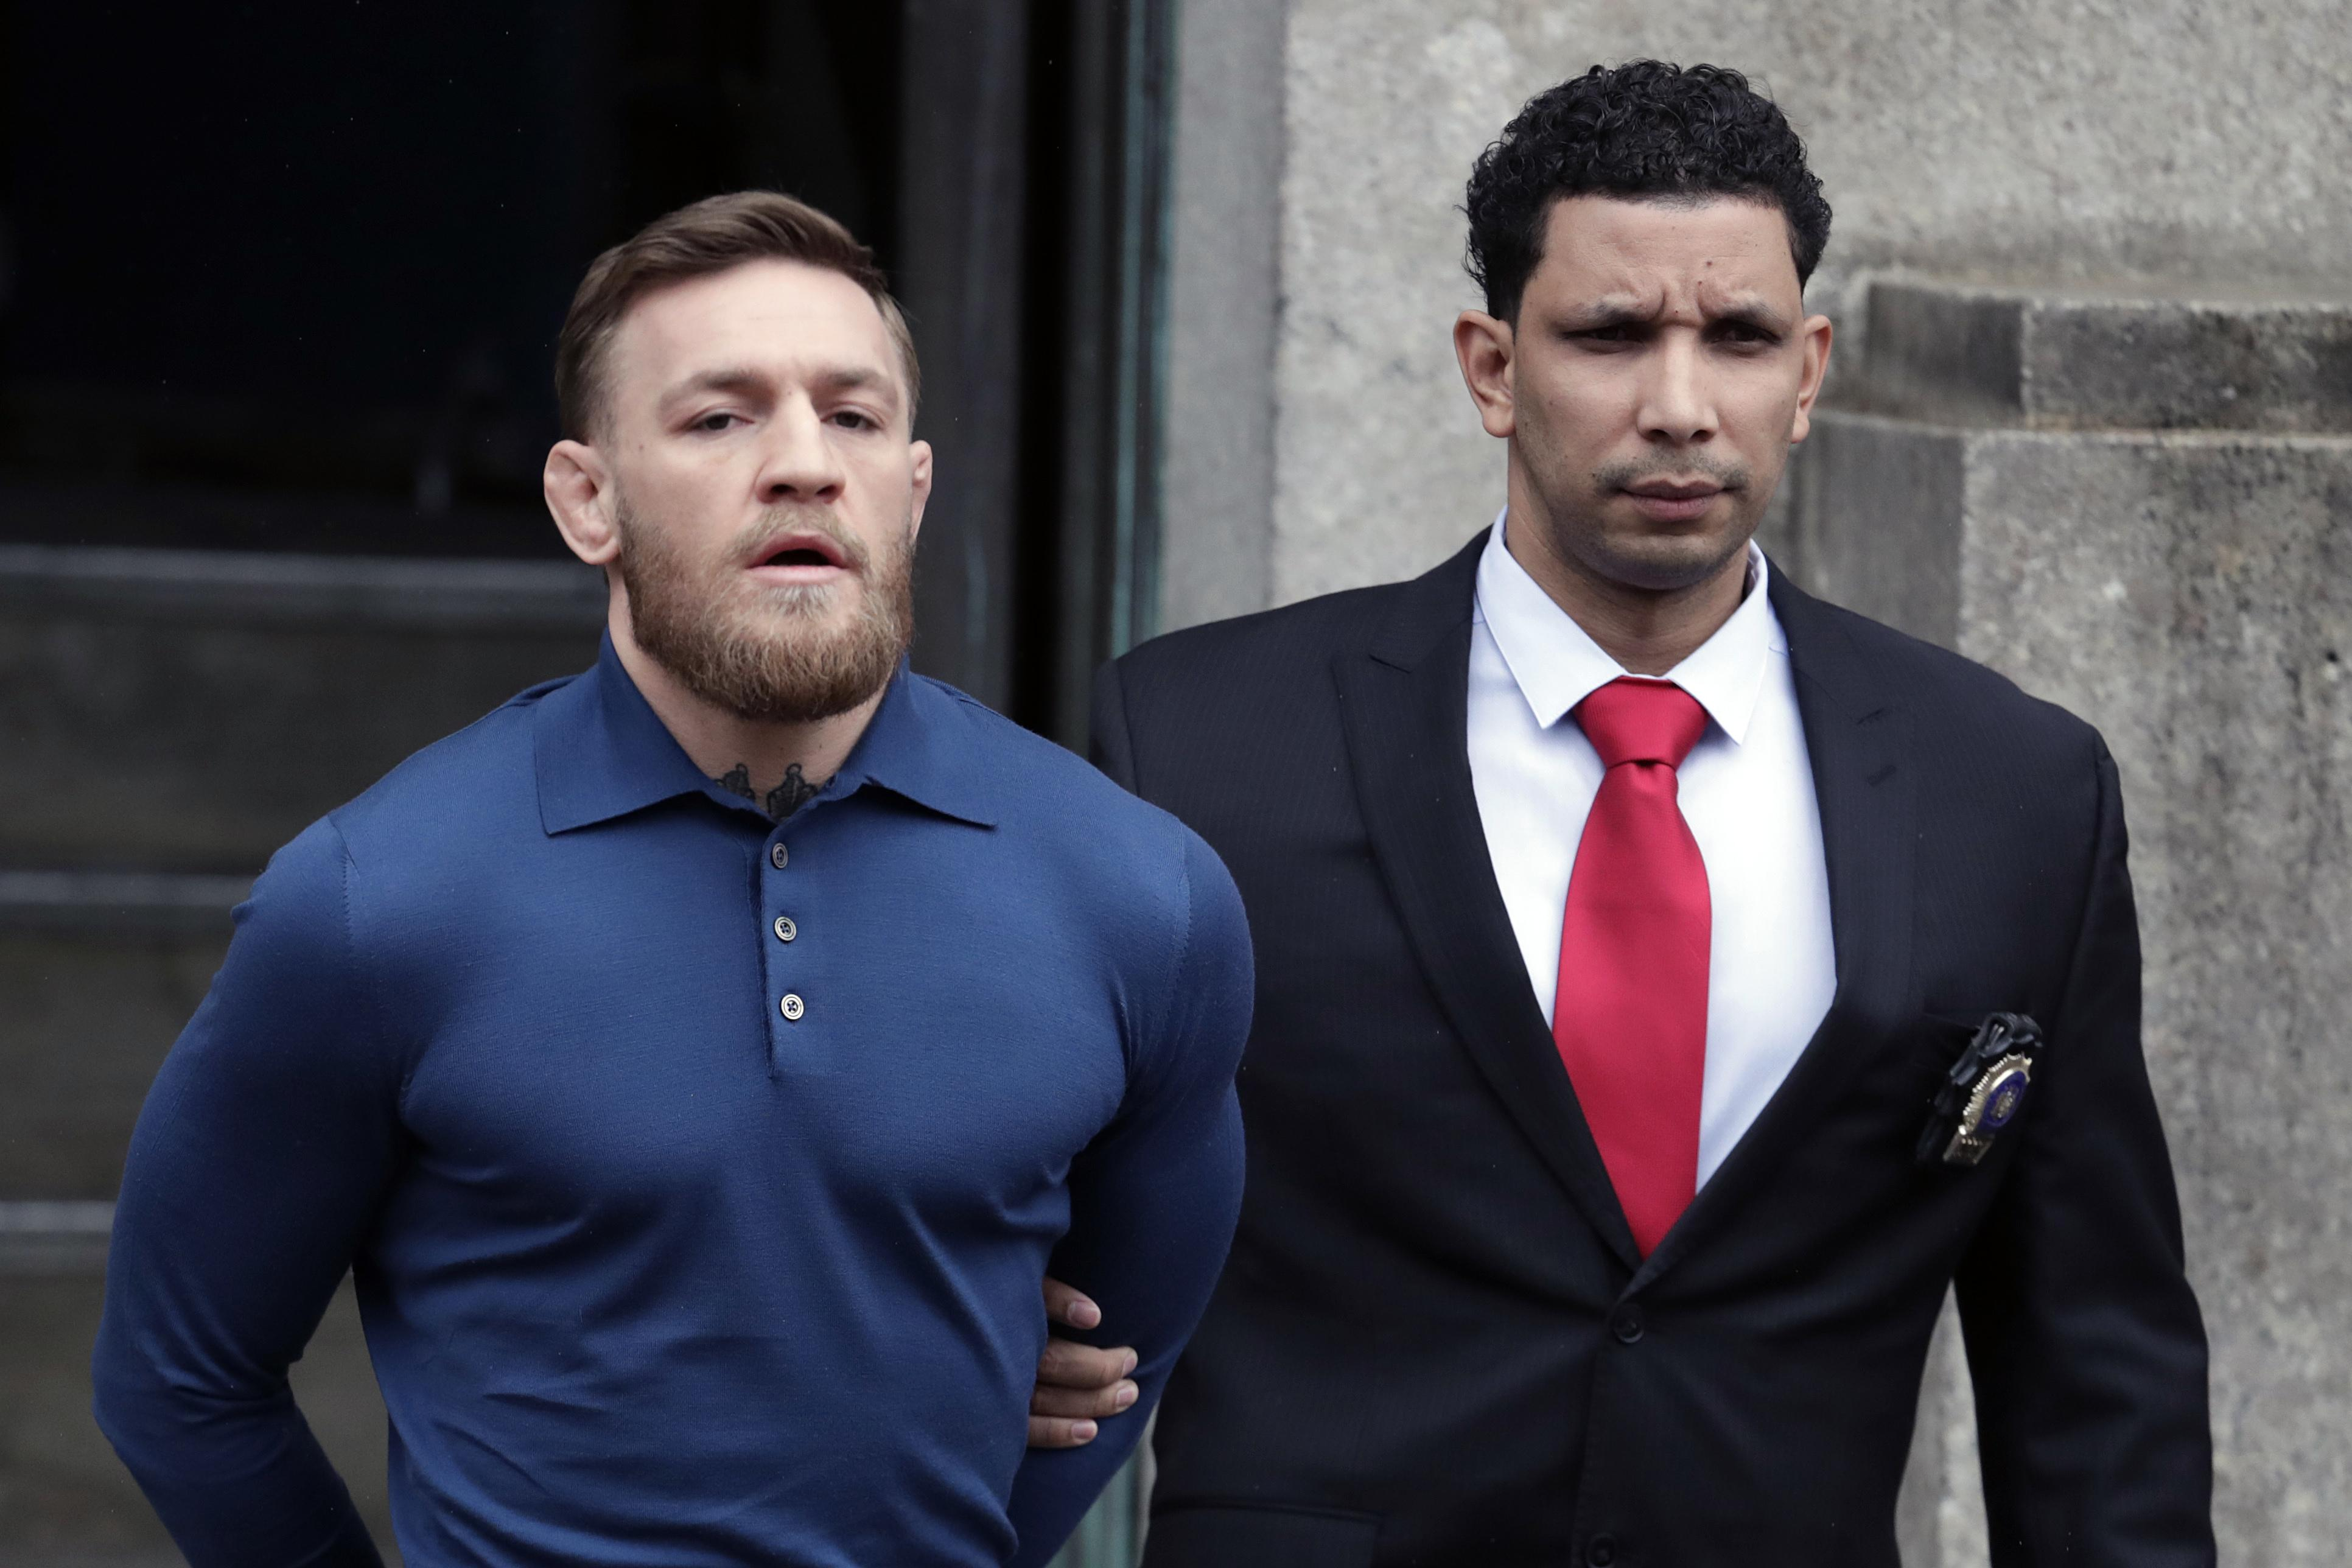 Conor McGregor has been charged with three counts of assault and one of criminal mischief after chaos reigned at yesterday's UFC 223 media day